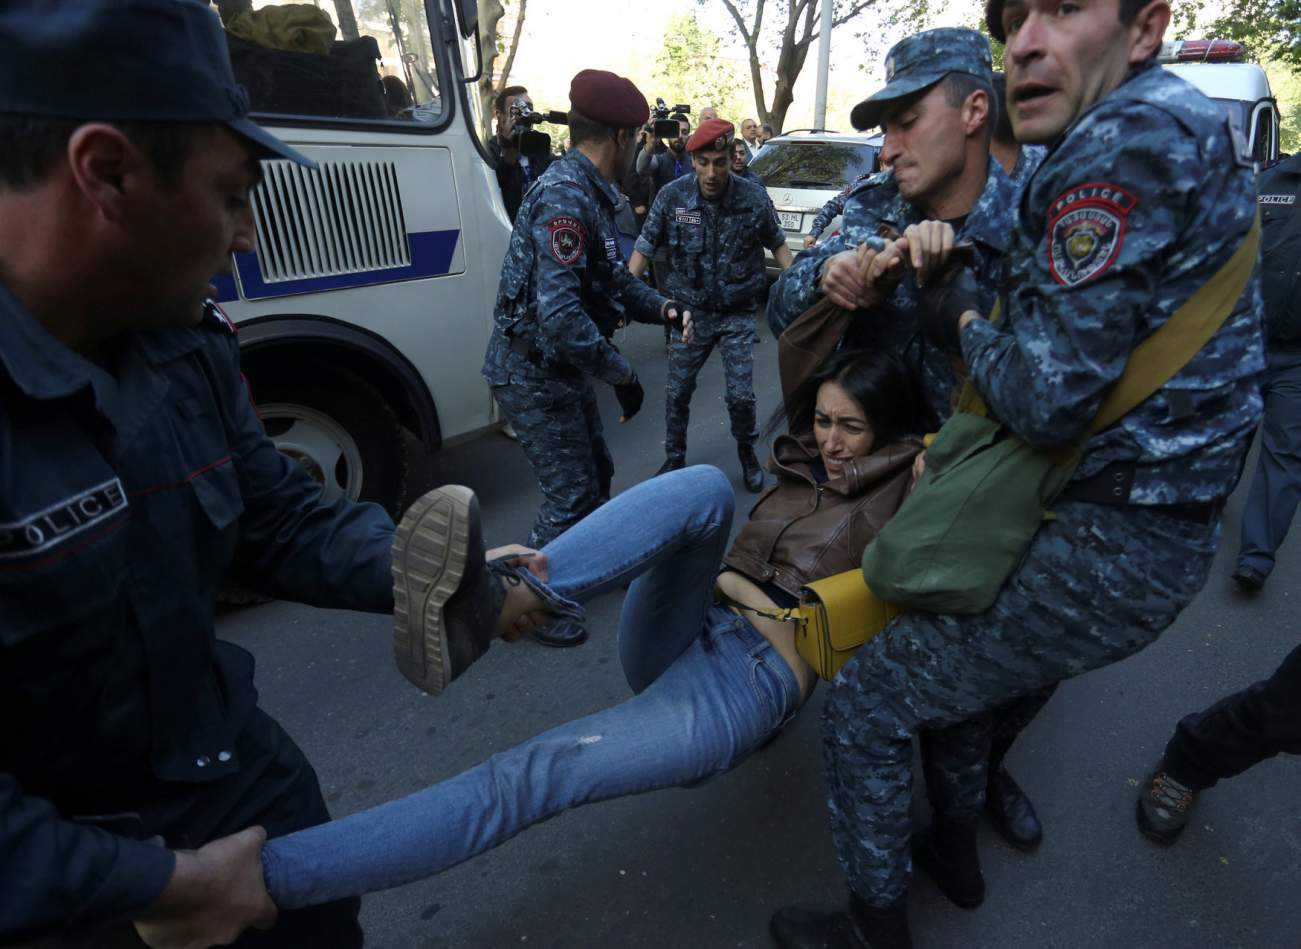 A demonstrator is detained by police during a protest after parliament voted to allow former president Serzh Sargsyan to become prime minister, in front of the Armenian government building in Yerevan, Armenia April 19, 2018. Photolure/Vahram Baghdasaryan via REUTERS